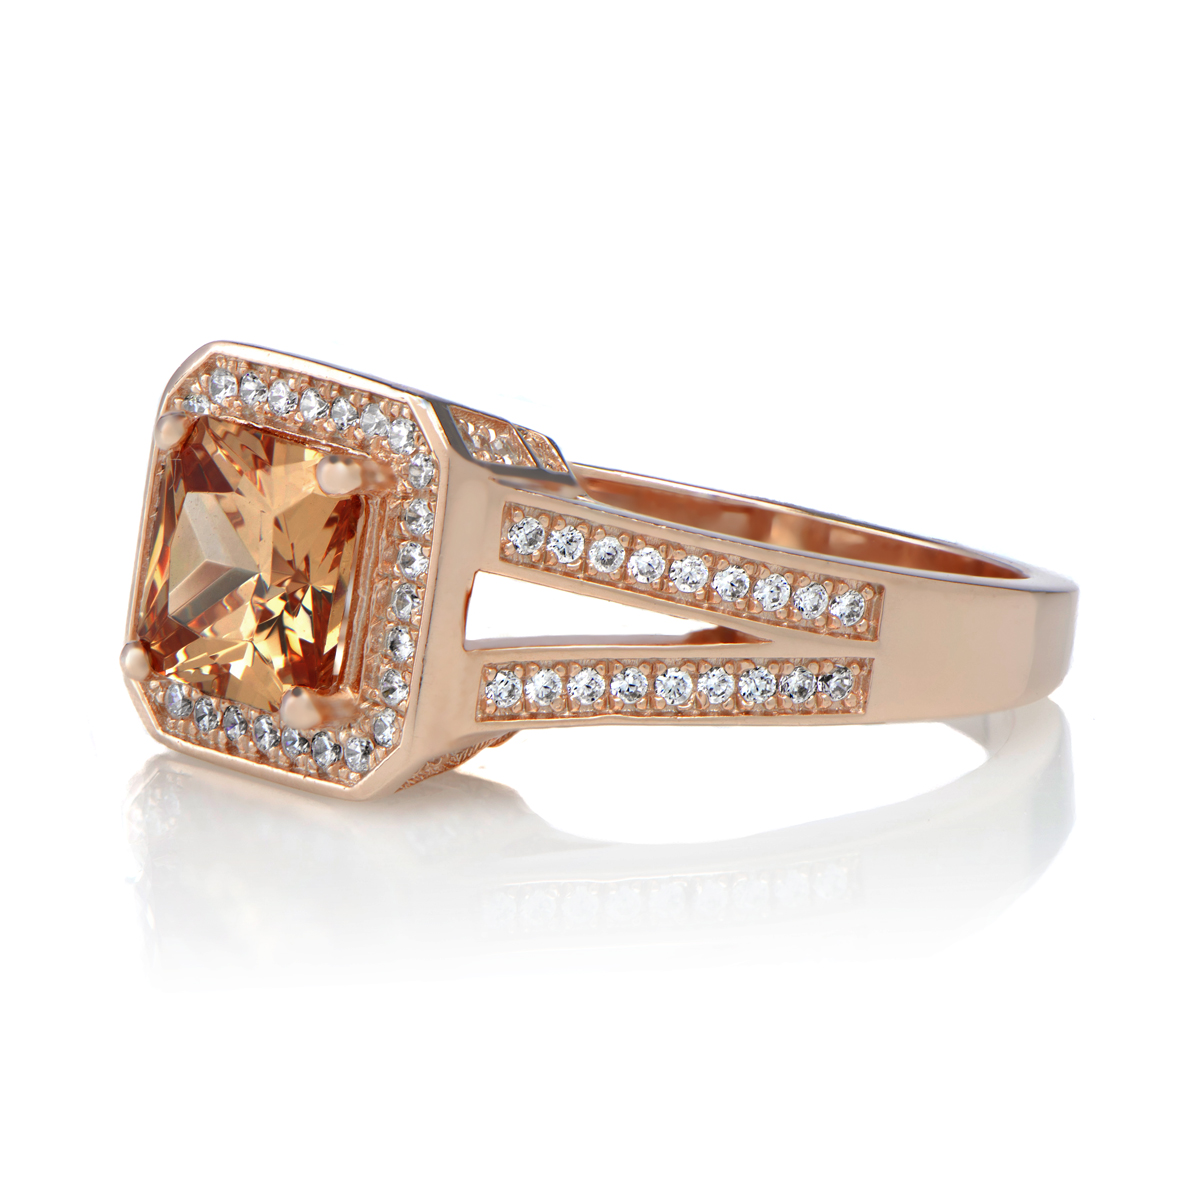 Adelle's 196ct Rose Goldtone Princess Cut Champagne Cz Engagement Ring